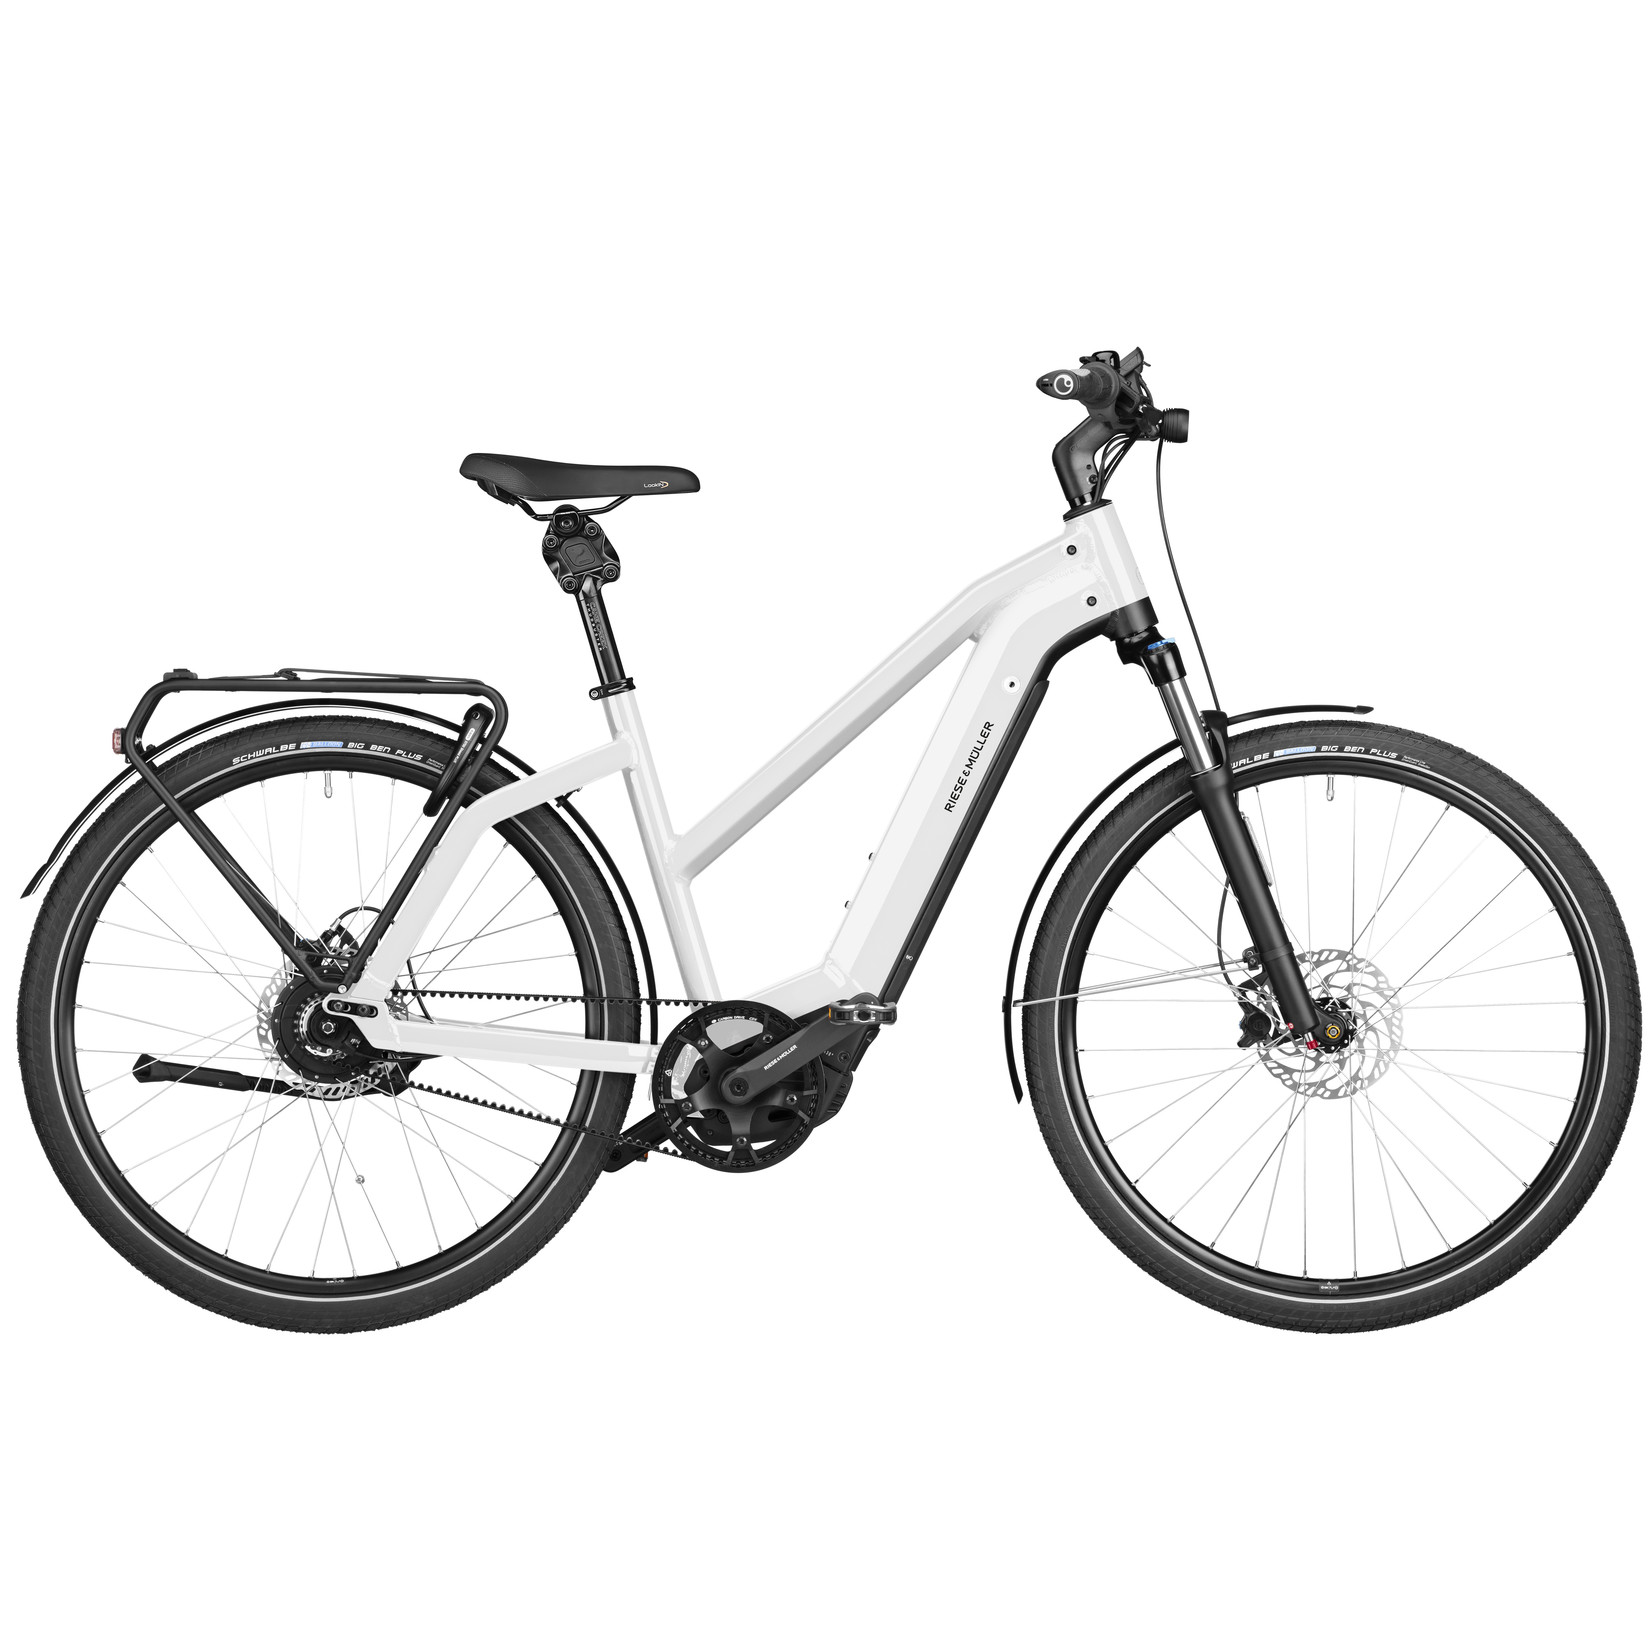 Riese & Muller Riese & Muller, Charger3, Mixte GT Vario, White